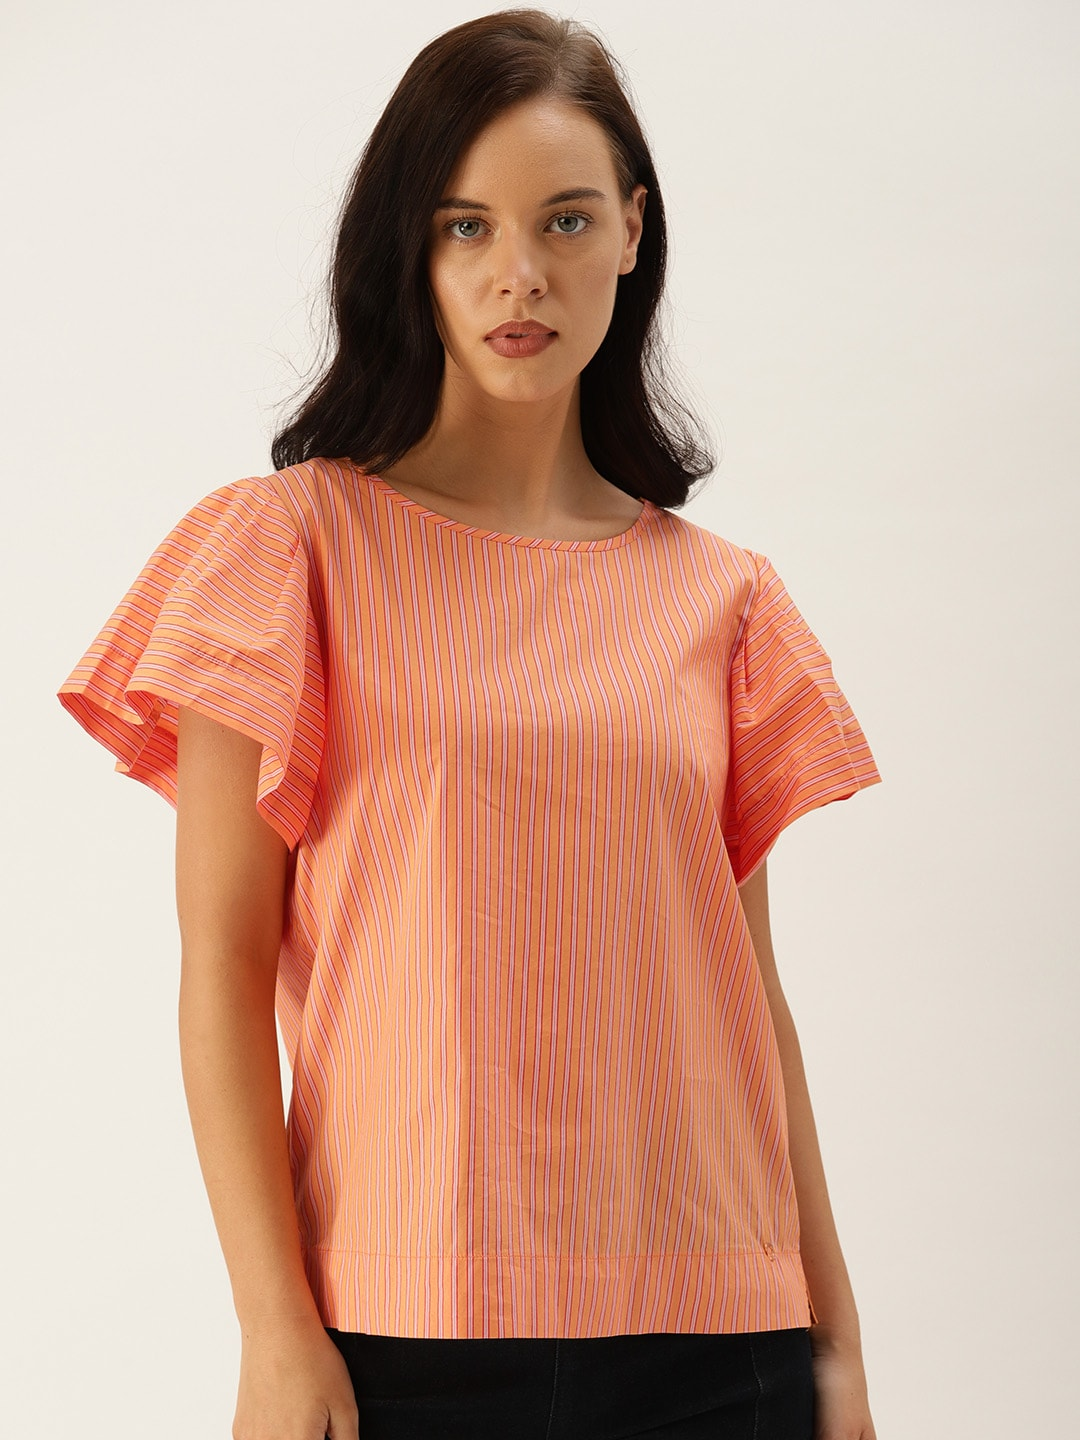 f140d9282a80a1 Striped Tops - Buy Trendy Striped Tops Online | Myntra